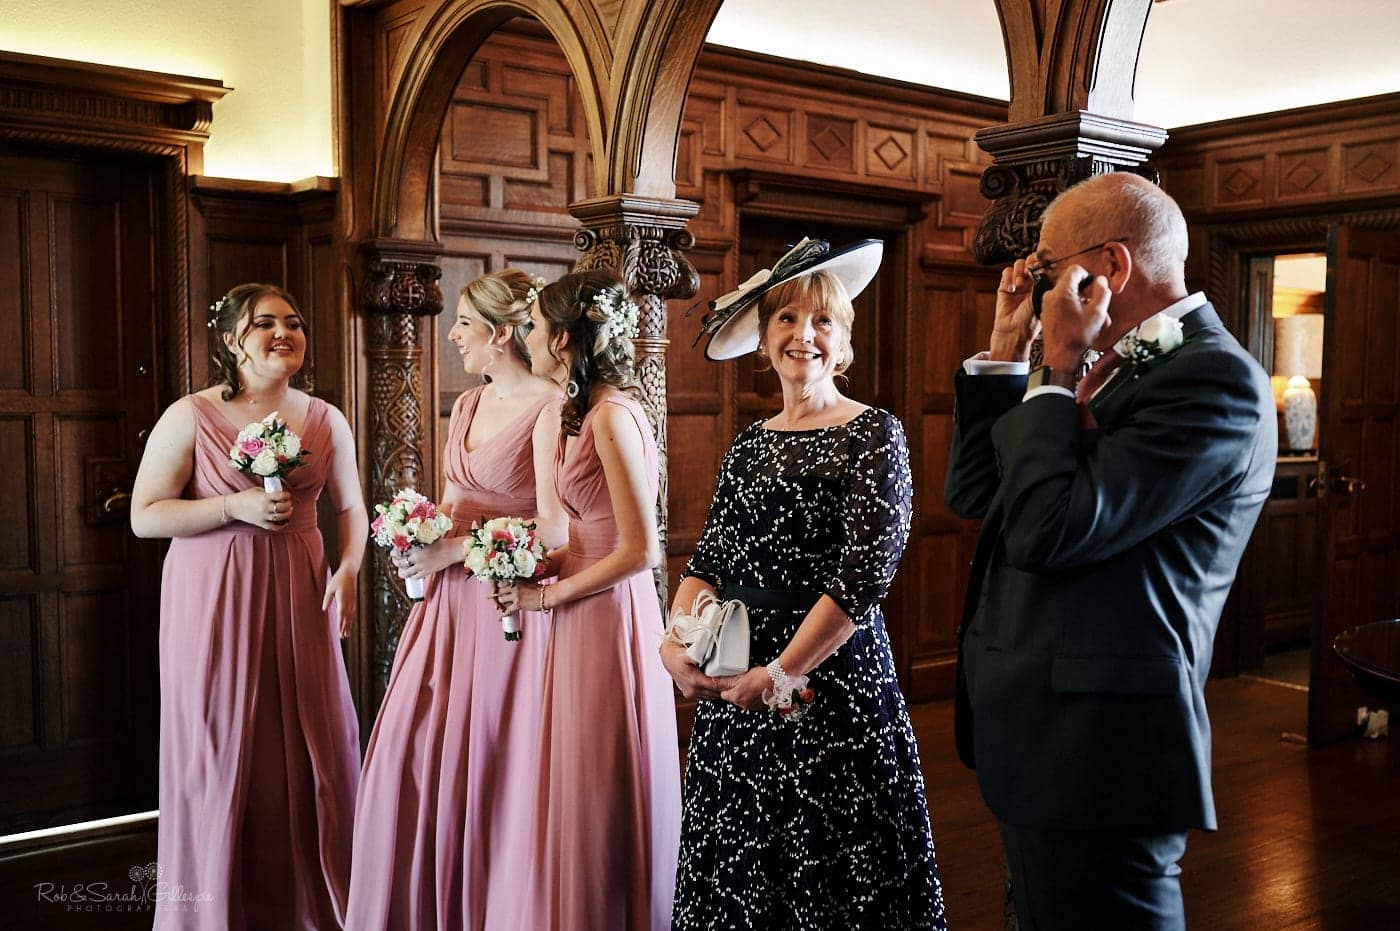 Bridesmaids and parents wait for bride in beautiful wood-panelled room at Pendrell Hall